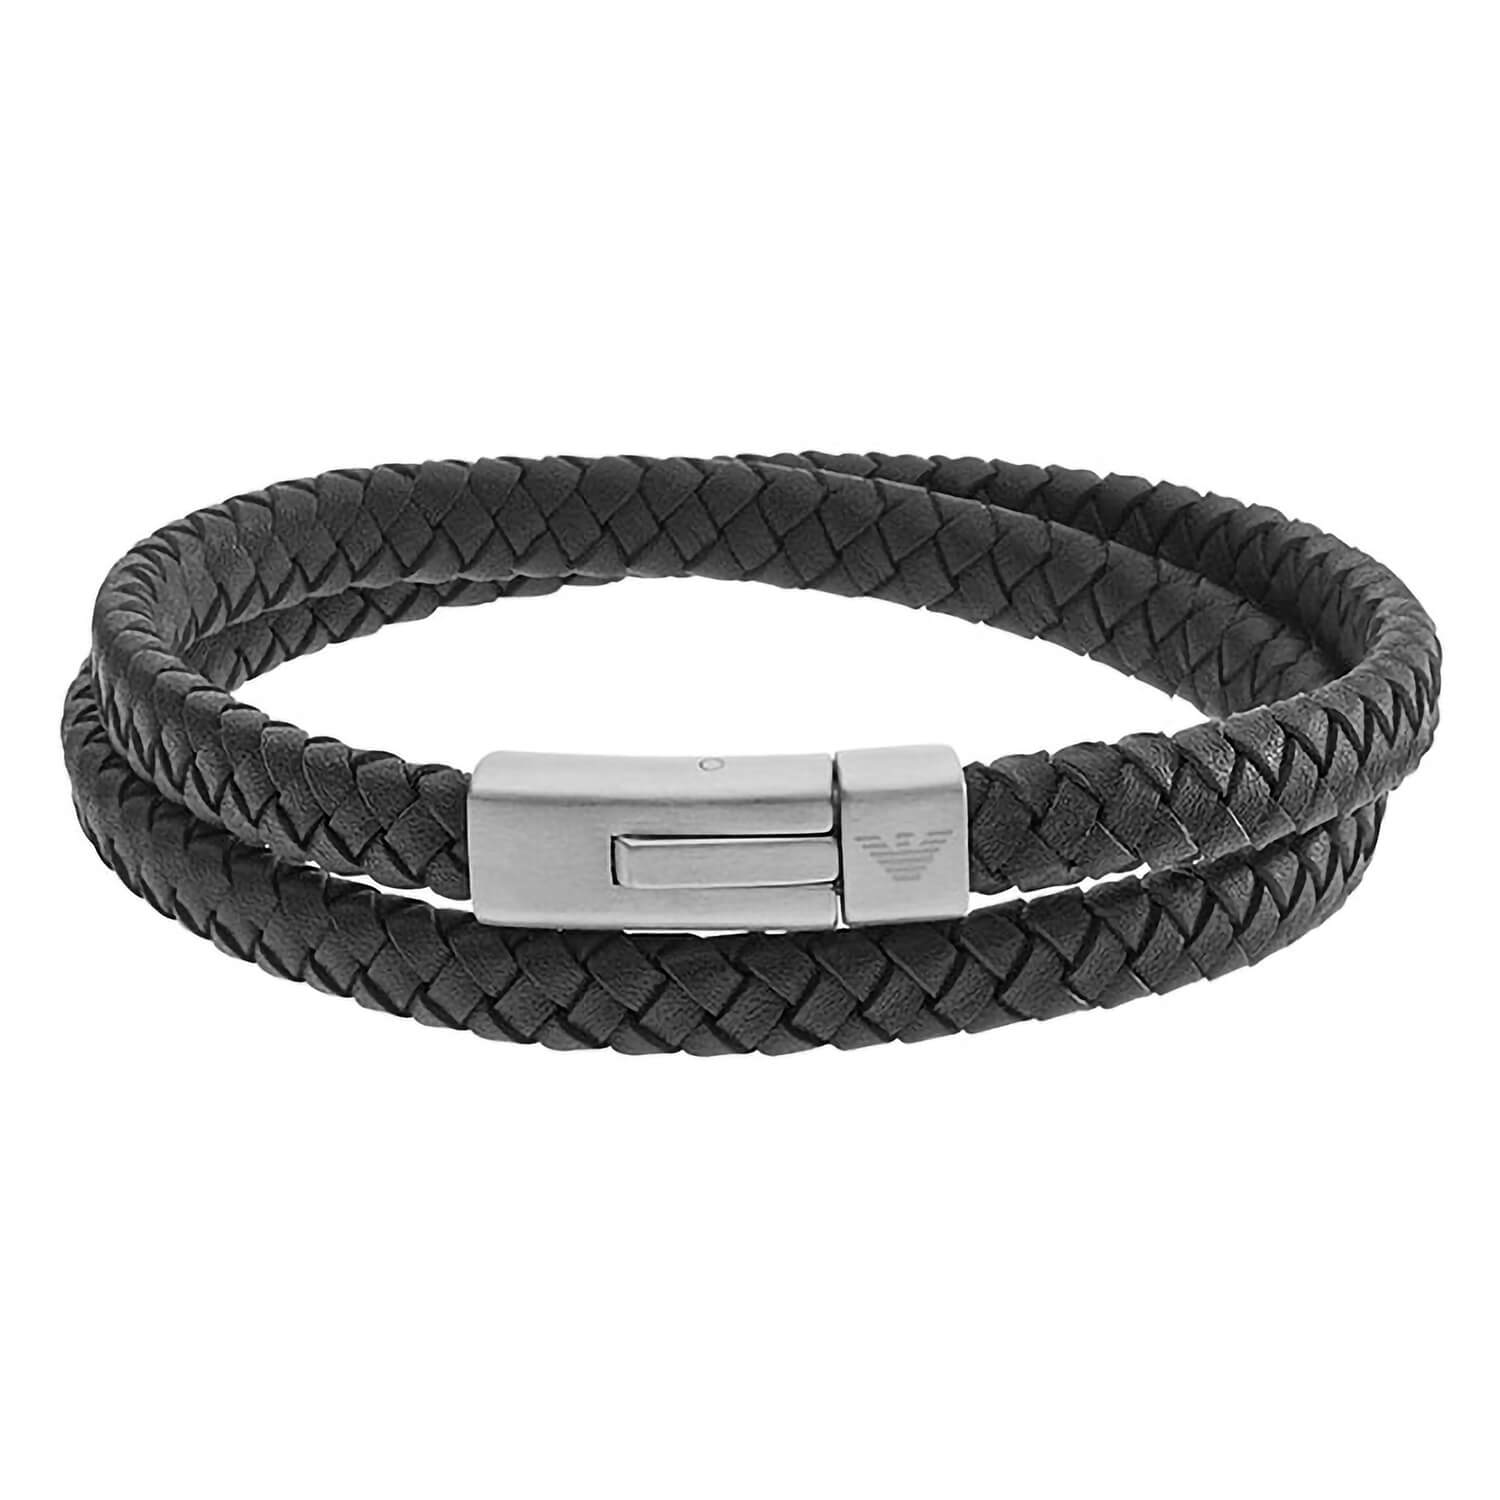 Men's Emporio Armani Signature leather and stainless steel wrap bracelet